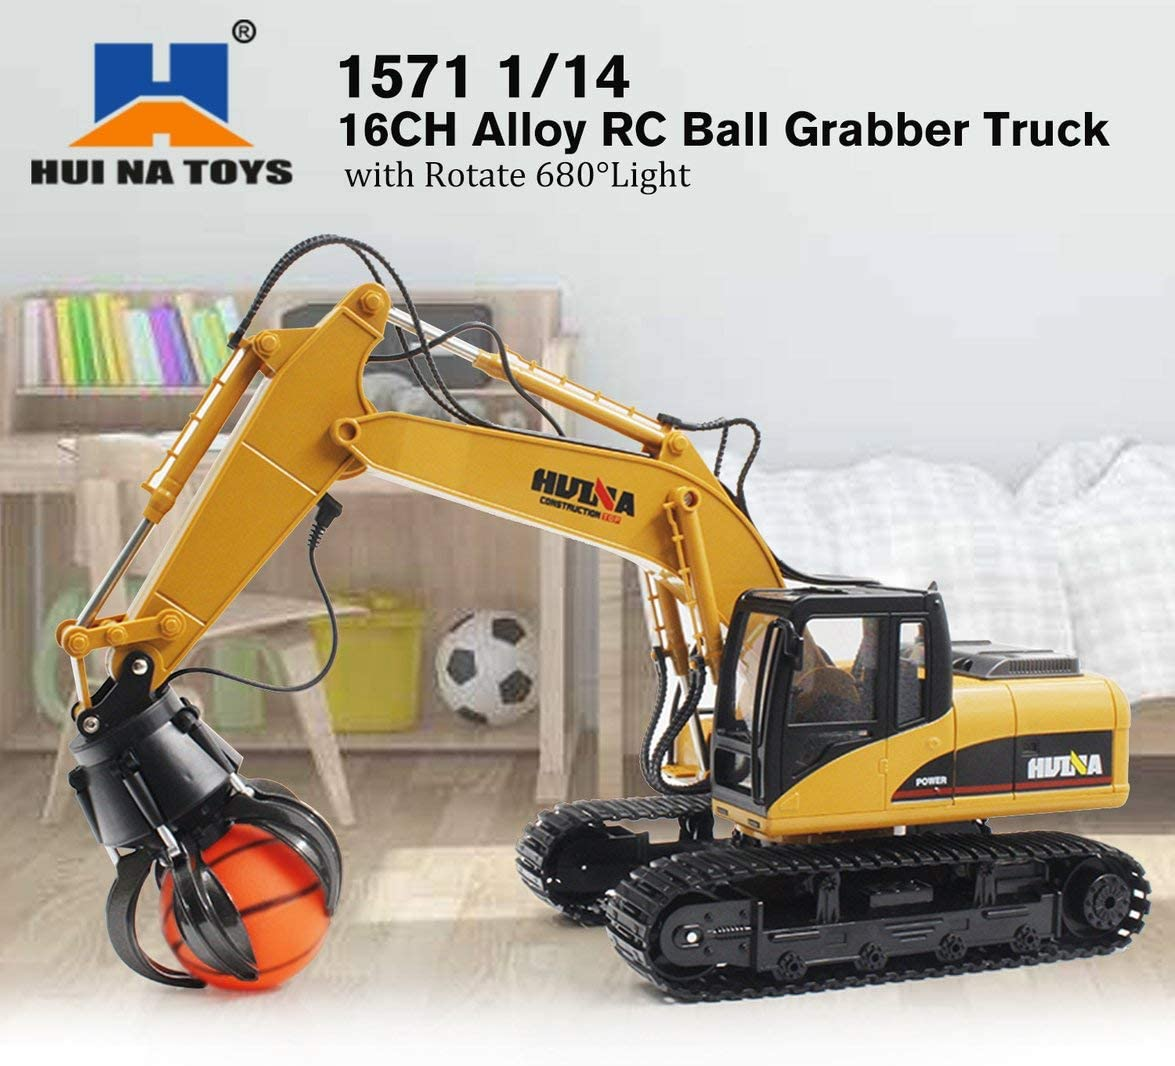 HUINA TOYS 1571 1//14 16CH Alloy RC Ball Grabber Truck Engineering Construction Car Vehicle with Sound Light Rotate 680/°RTR